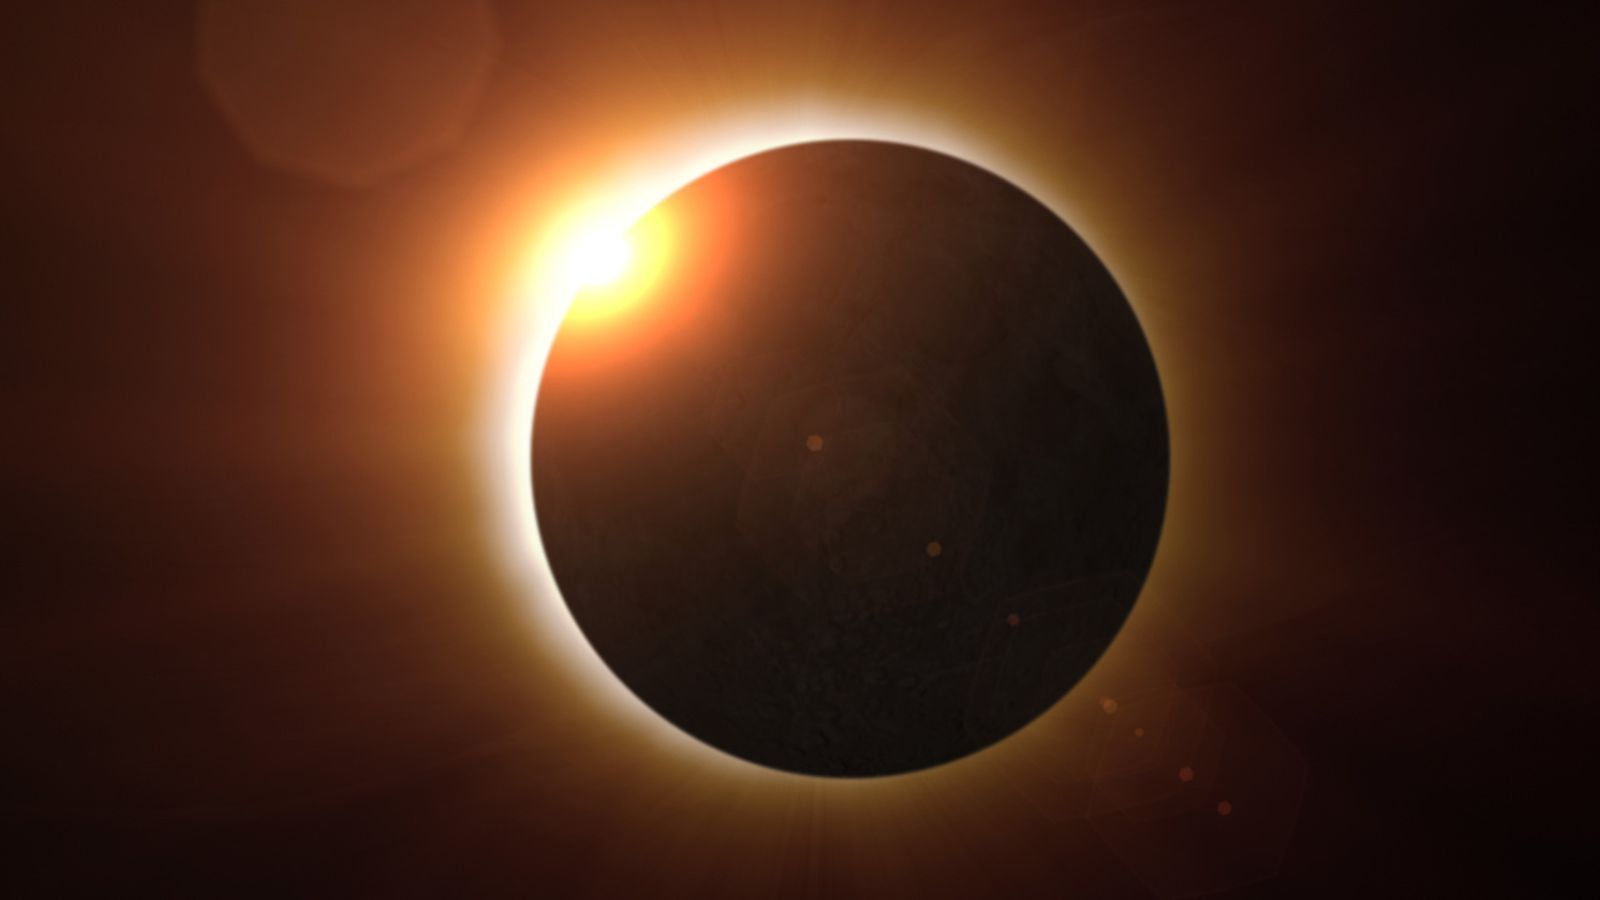 How to use the iNaturalist app to record weird animal behavior during the eclipse